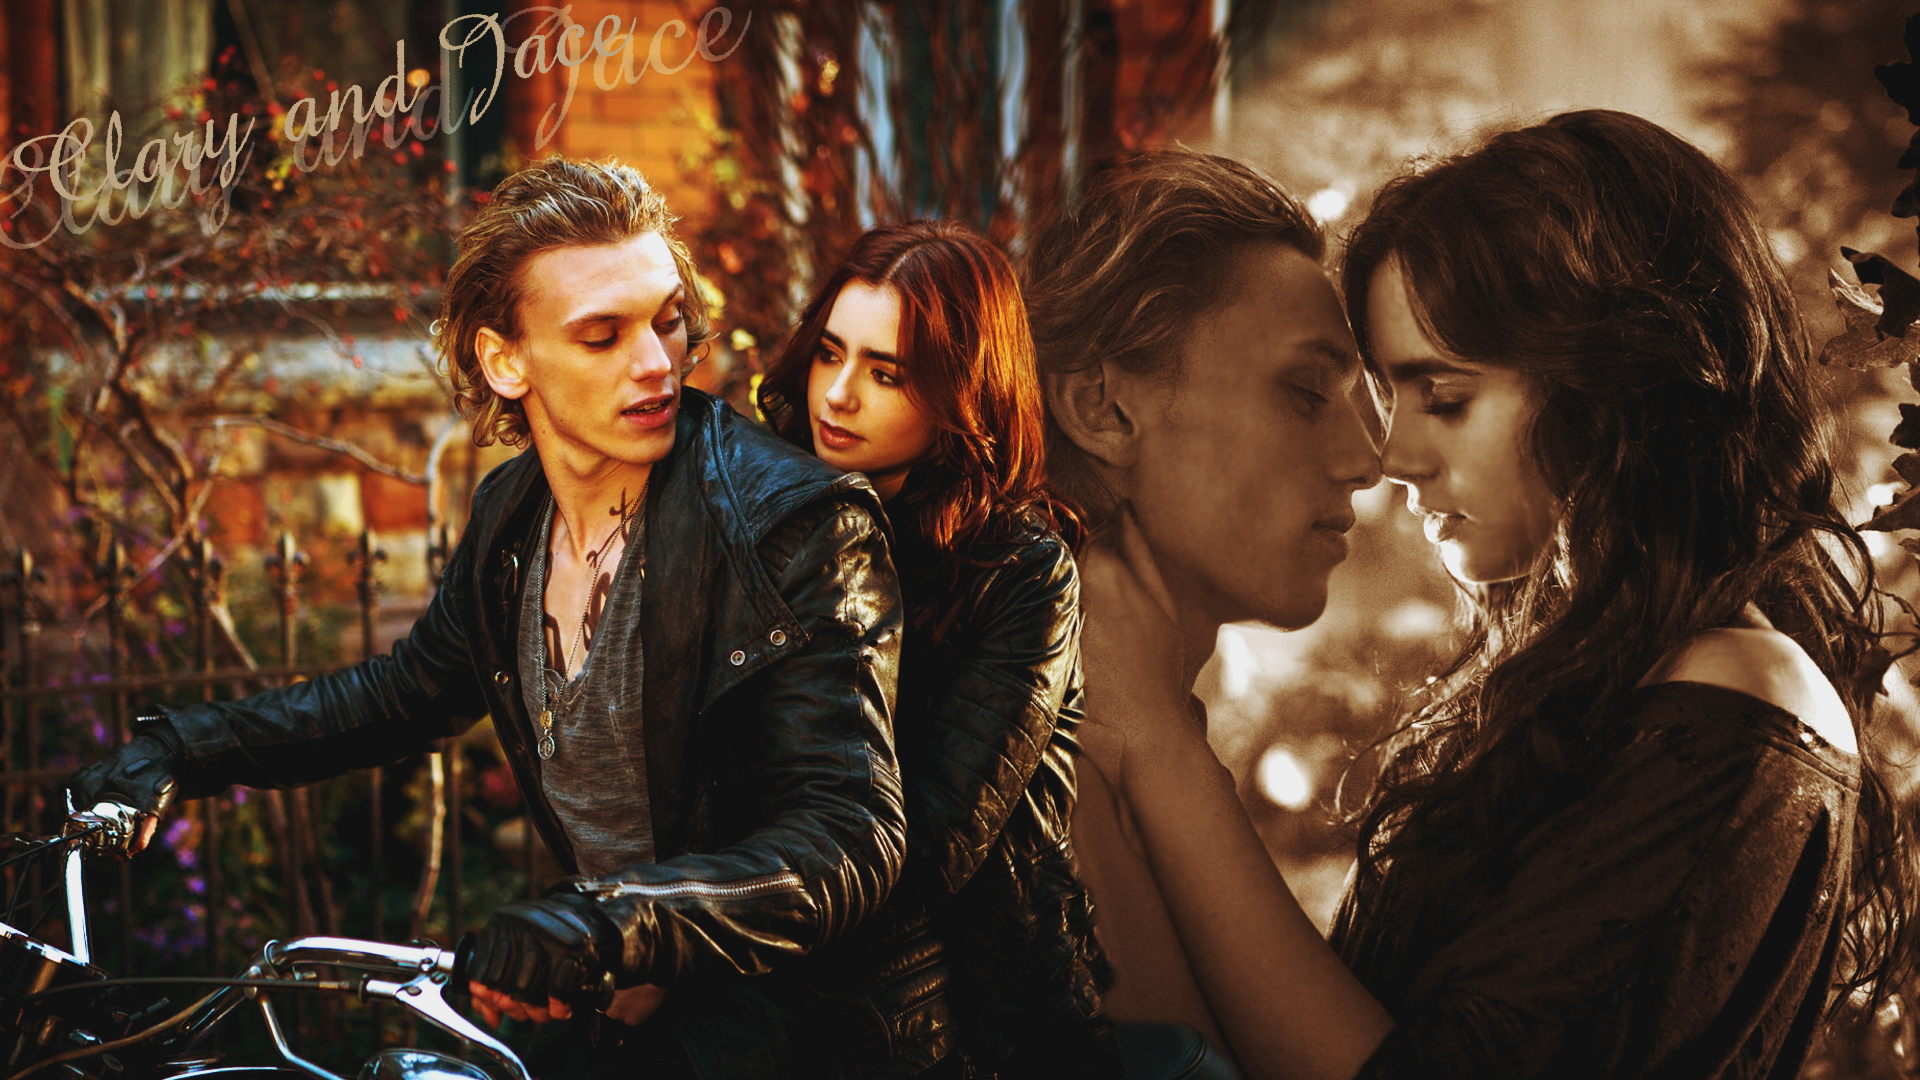 Clary and Jace wallpapers